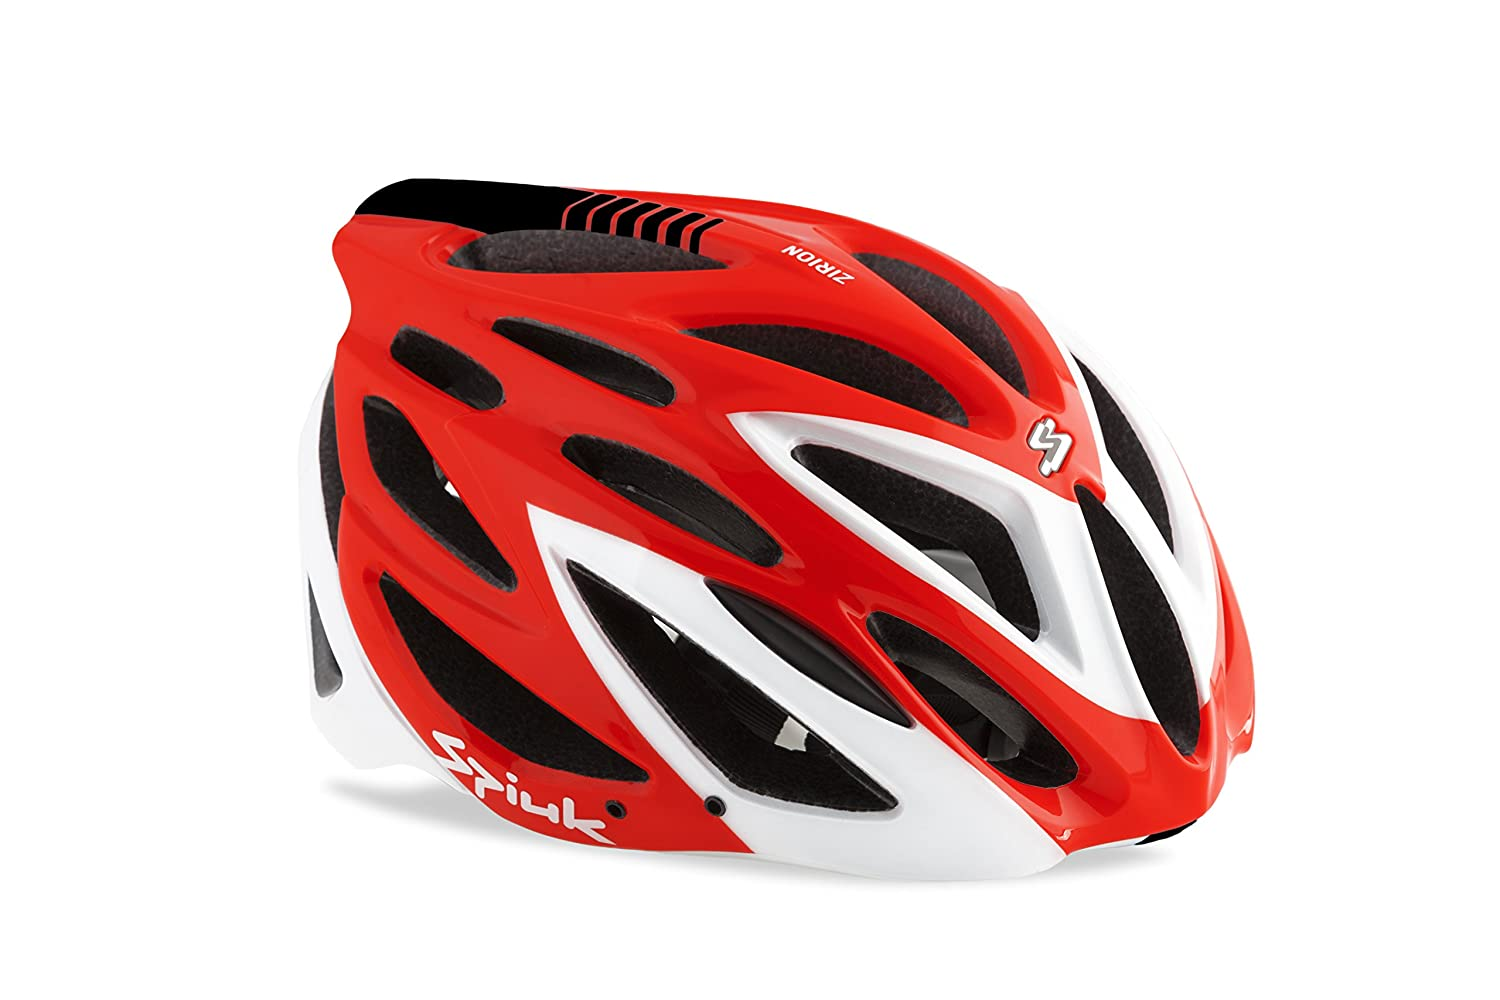 Spiuk Casque 2017 Zirion Casques Cyclisme Blanc 2YeWEH9IbD